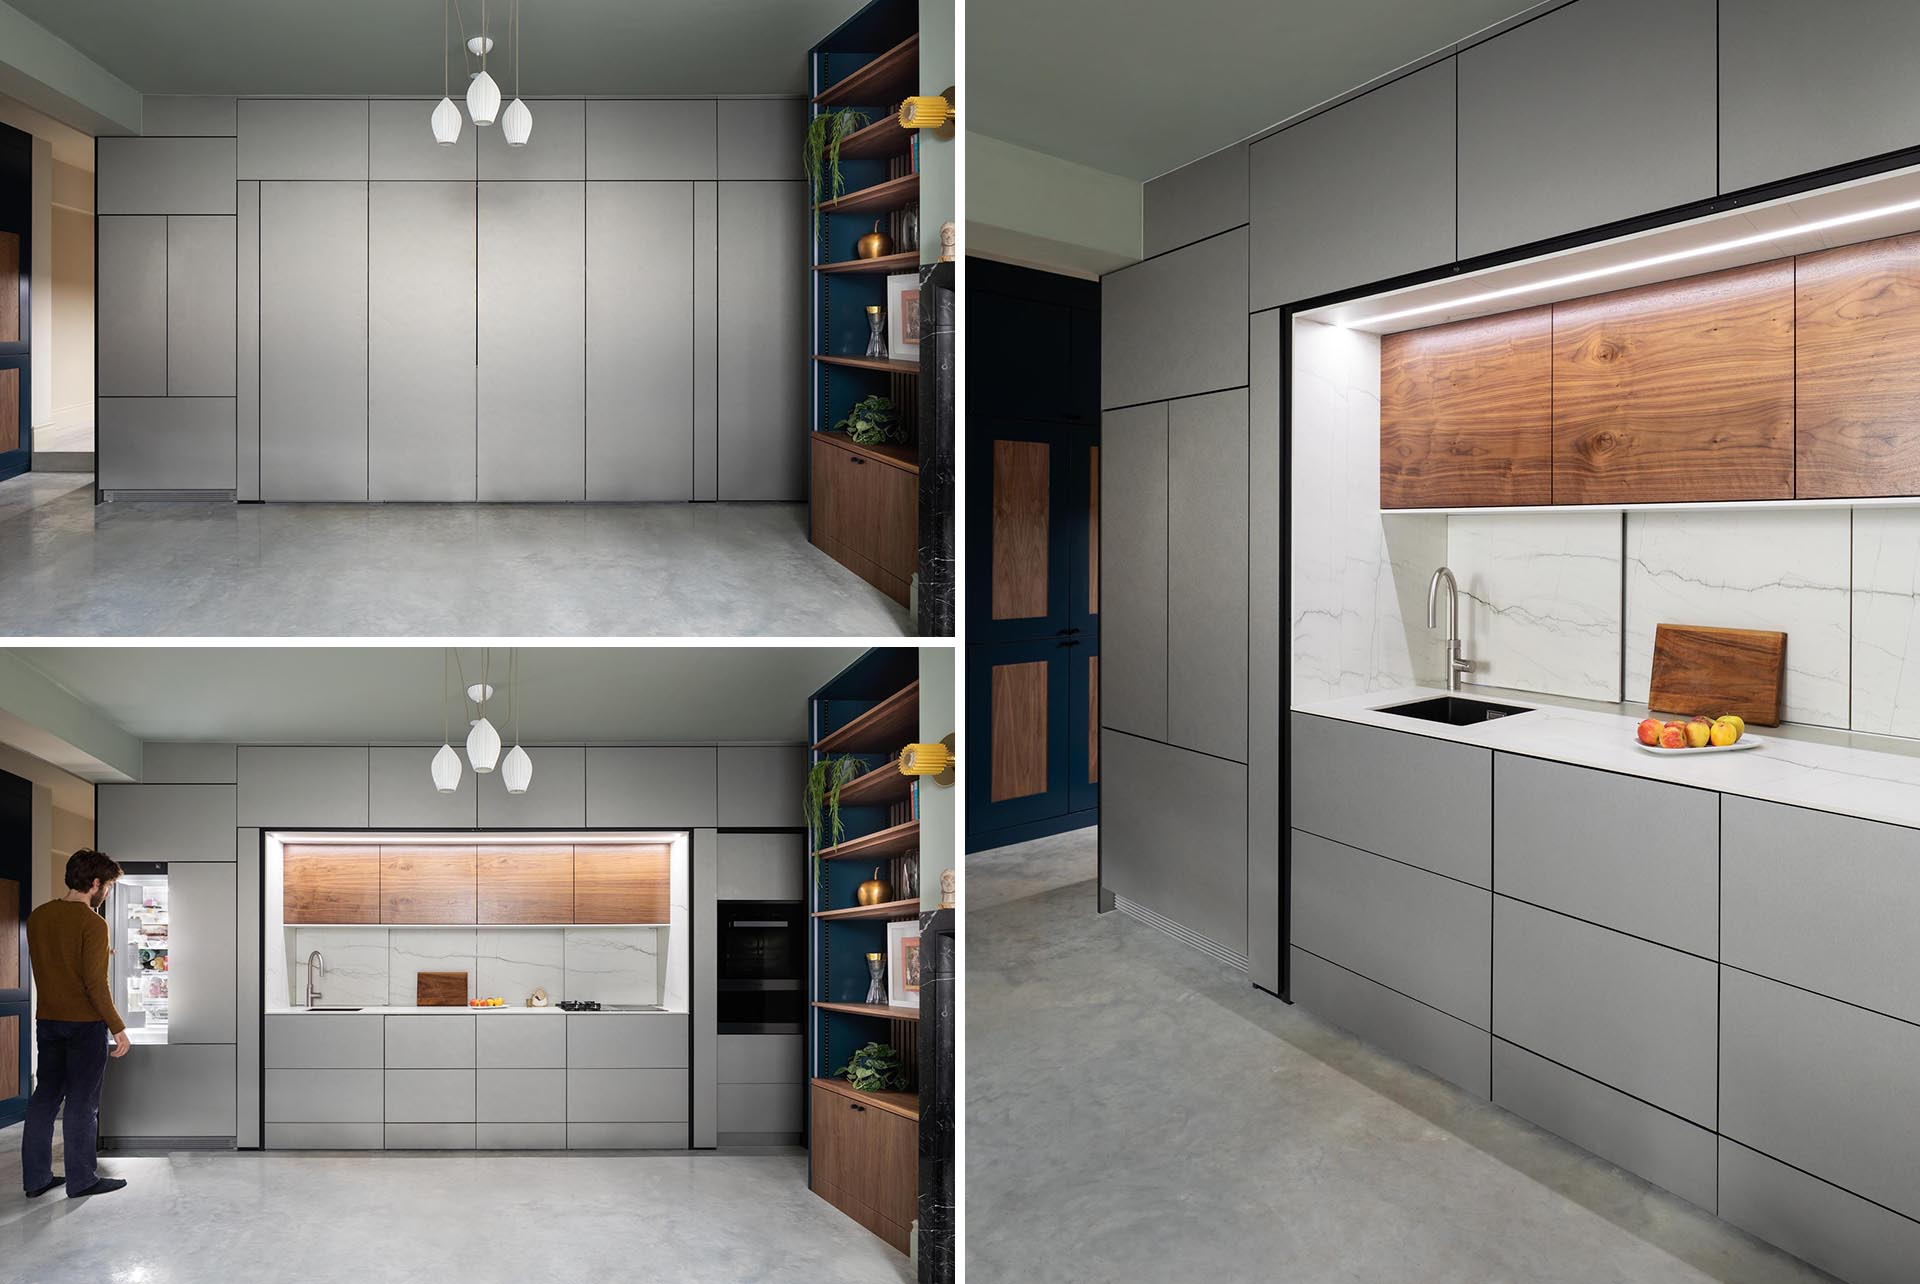 A modern kitchen hidden within cabinetry, also includes integrated appliances.